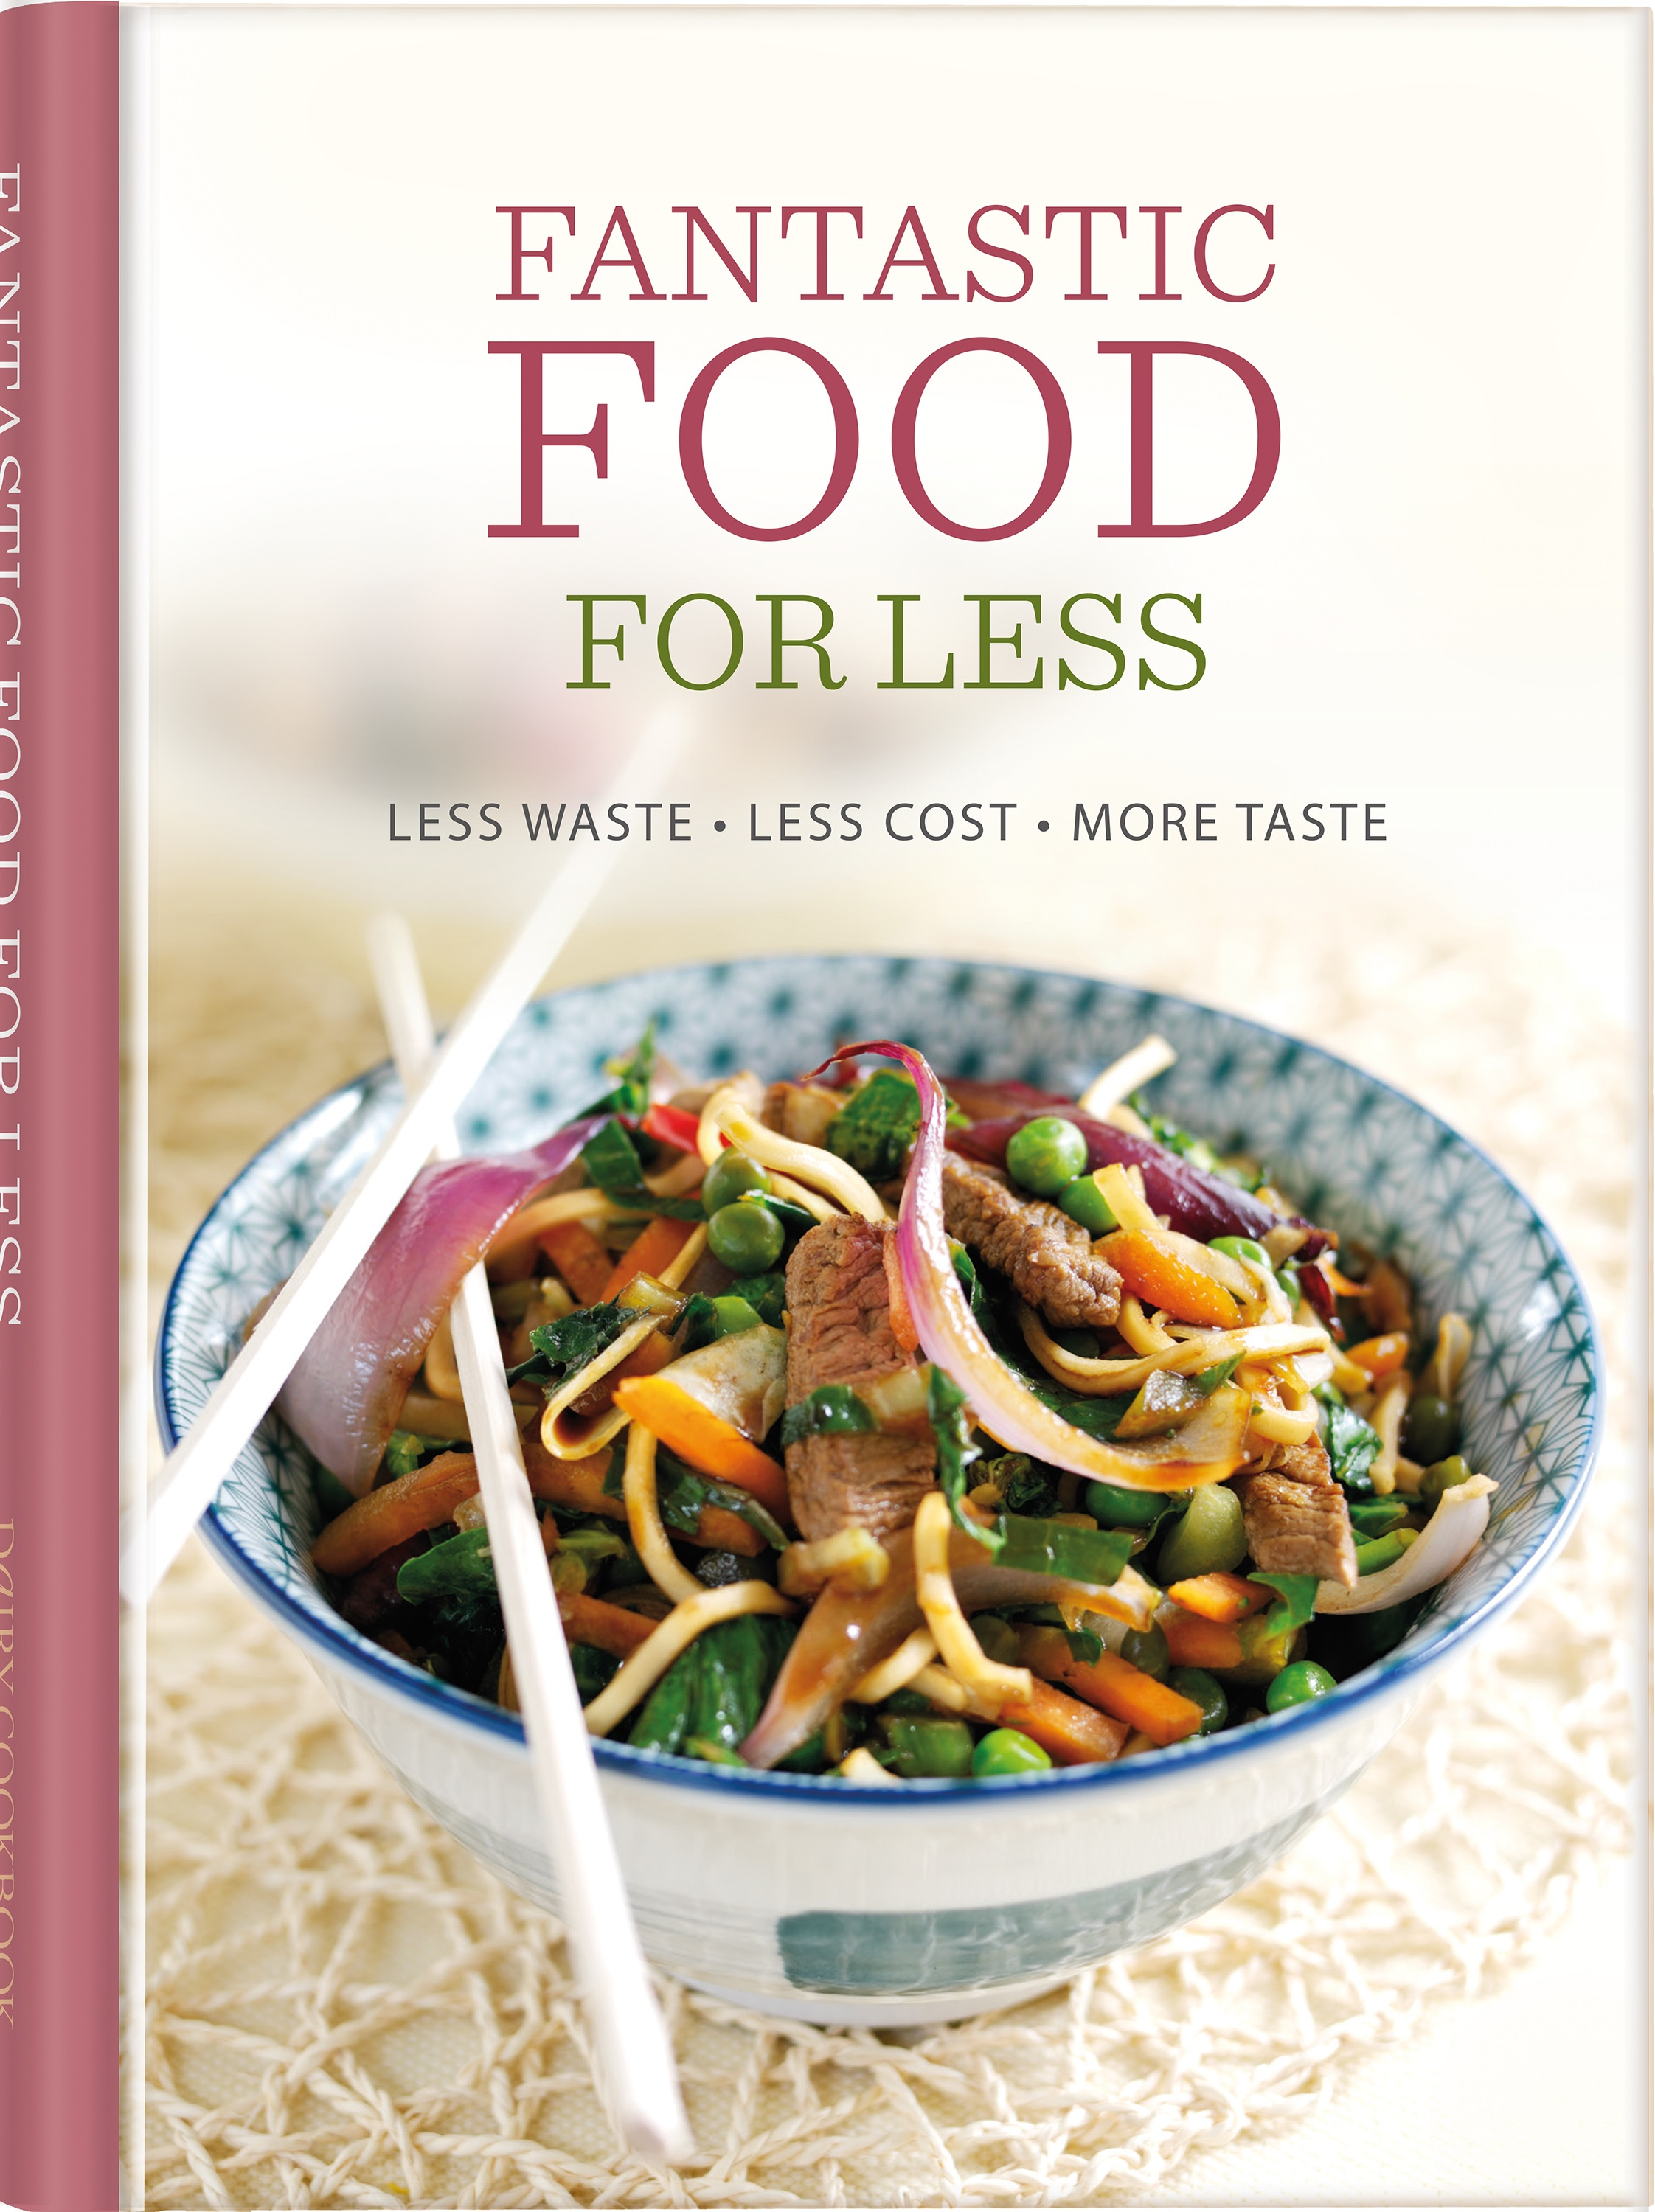 Fantastic Food For Less cover low qual